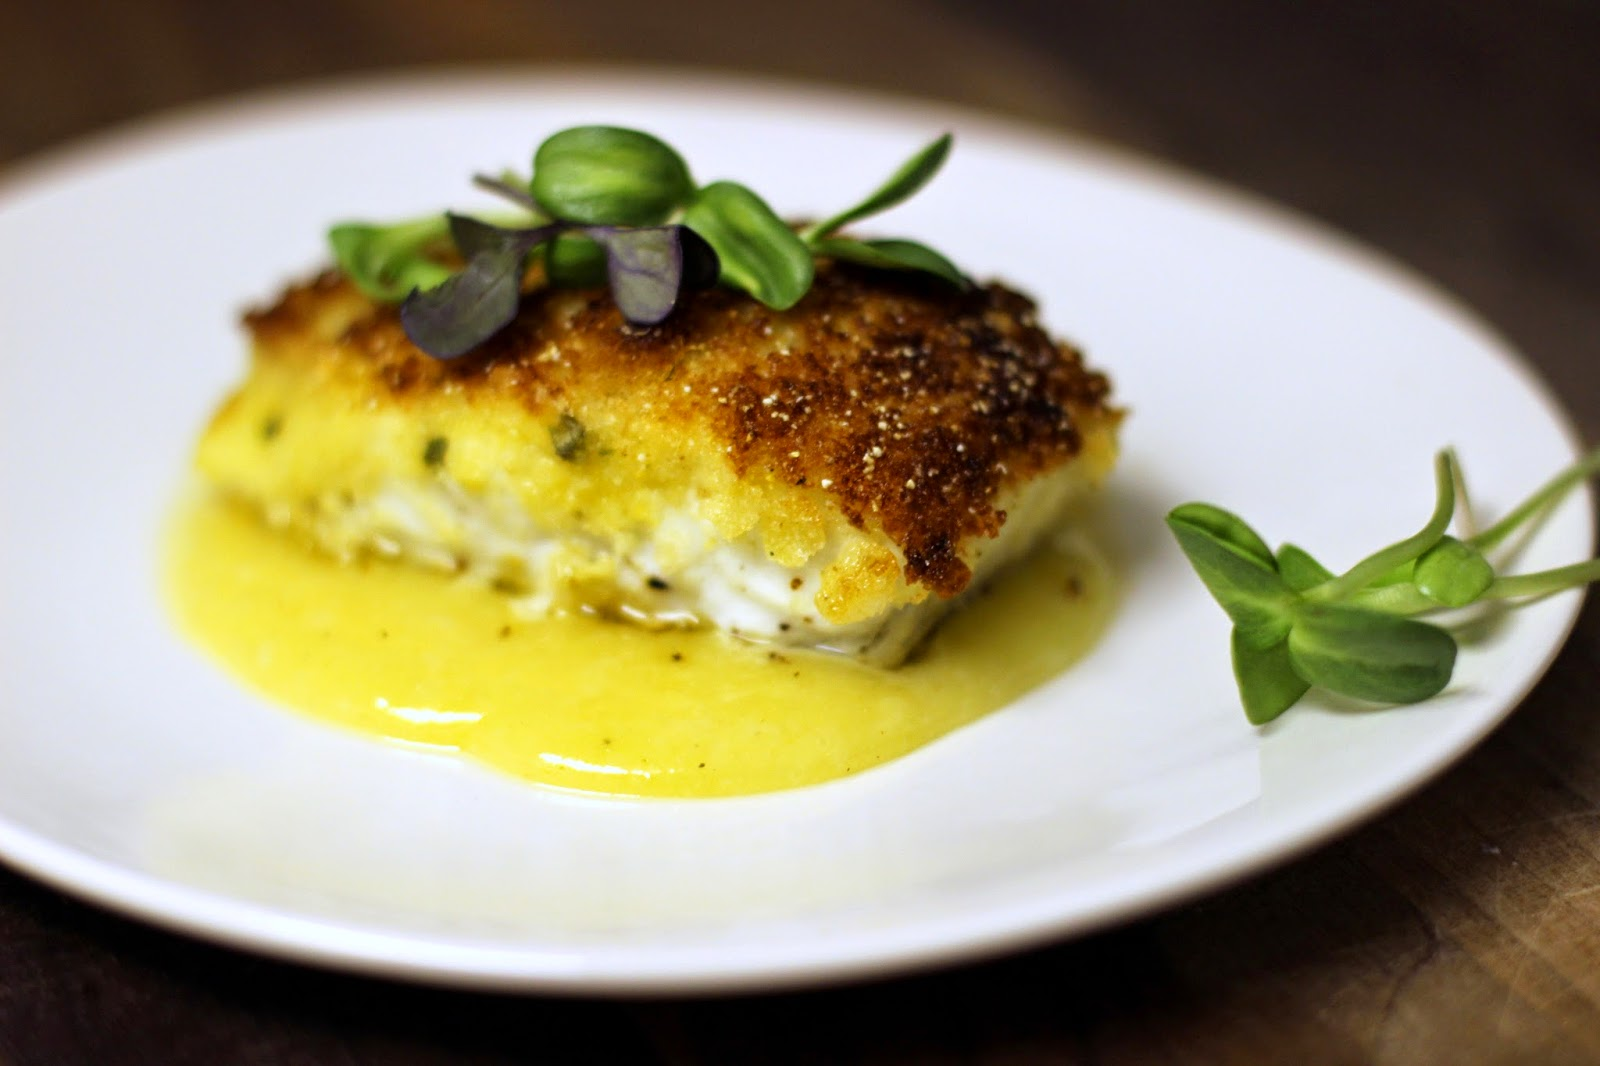 halibut dish with sauce